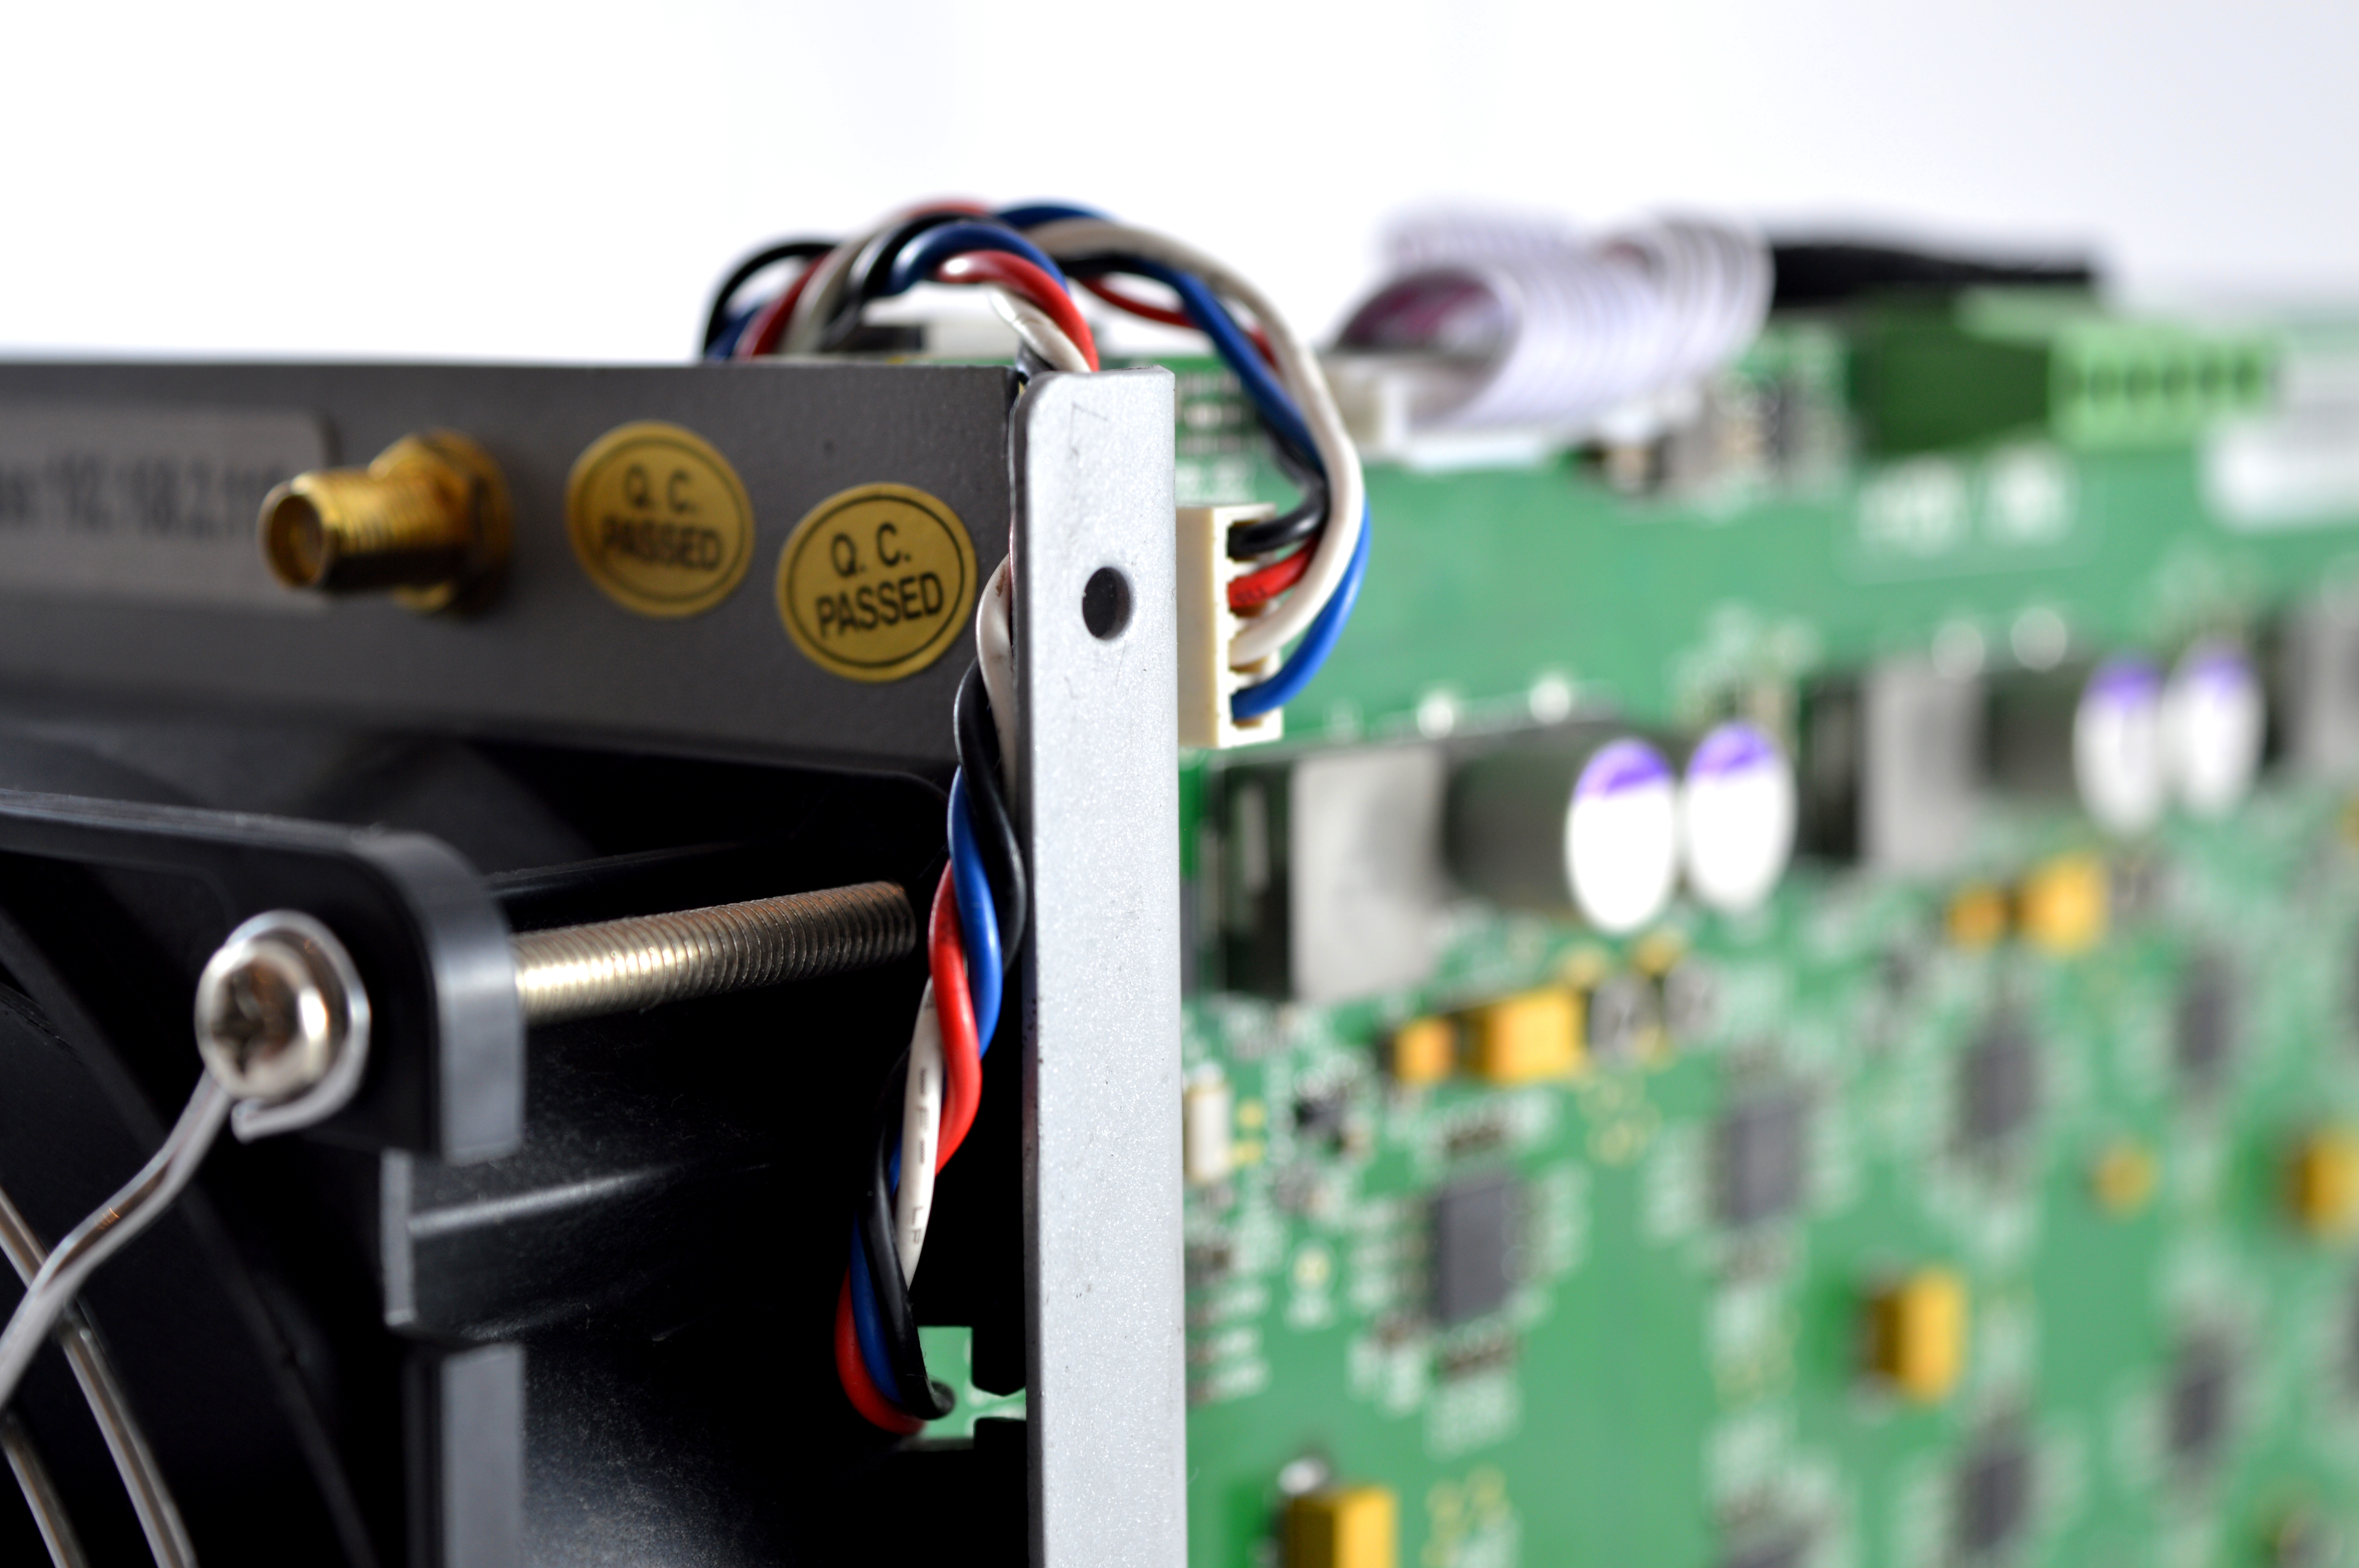 guide dogie s comprehensive bitmain antminer s1 setup hd see below diagram for pin outs